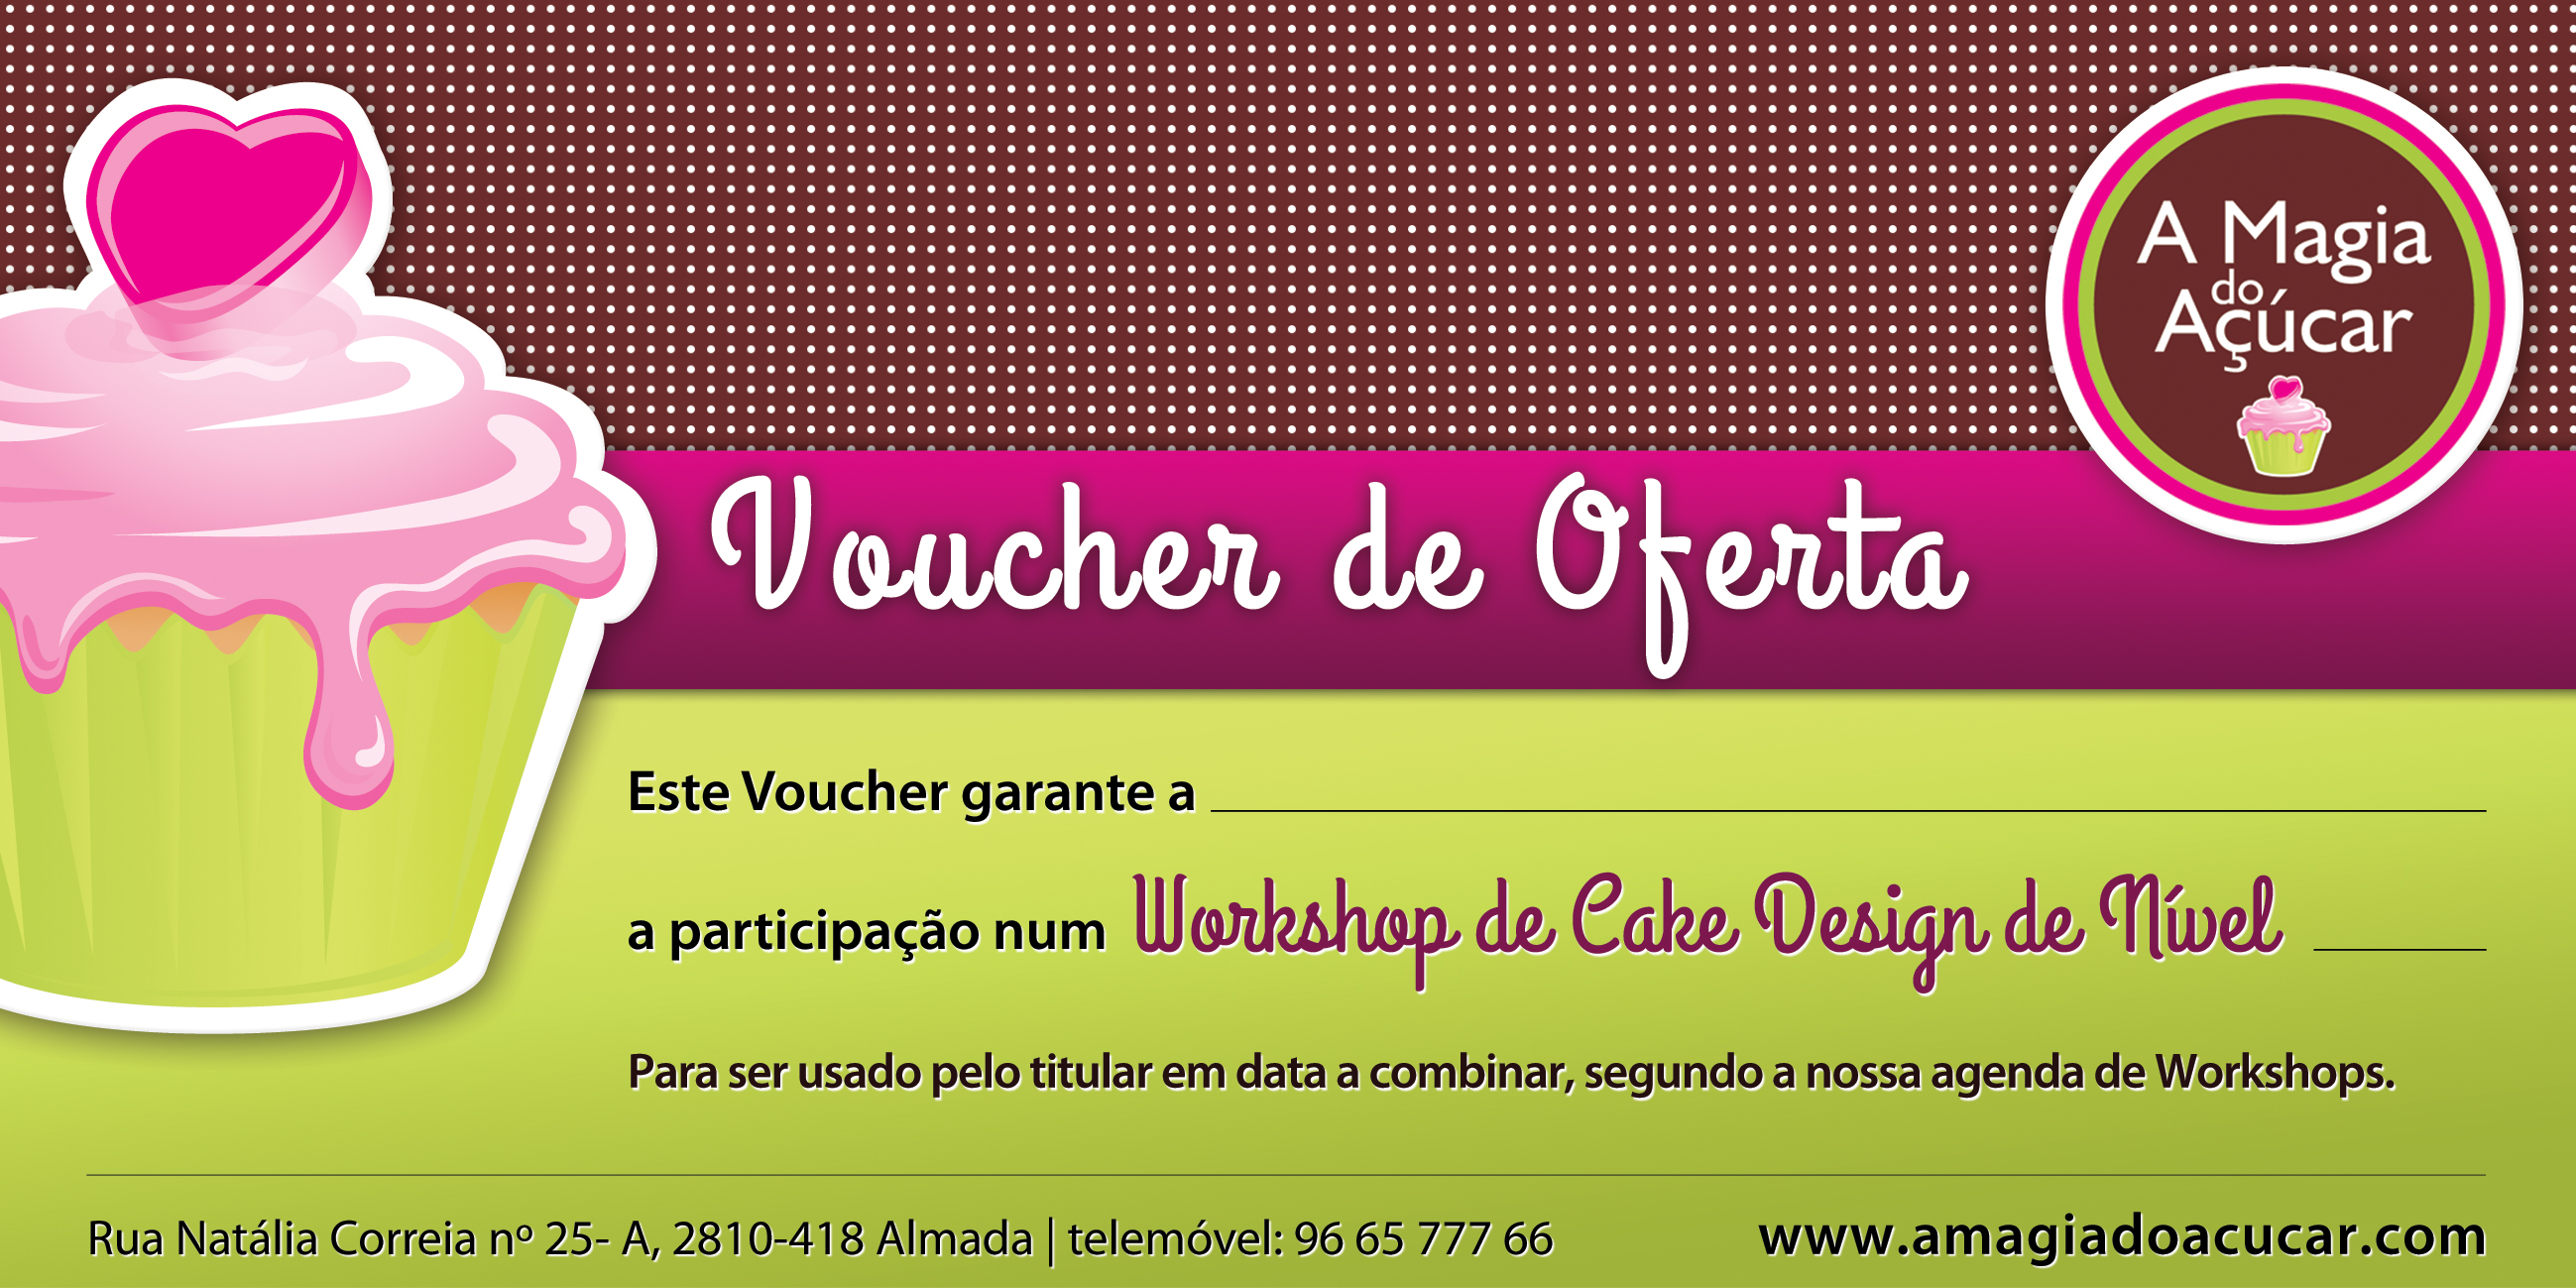 A Magia do Açúcar - Voucher